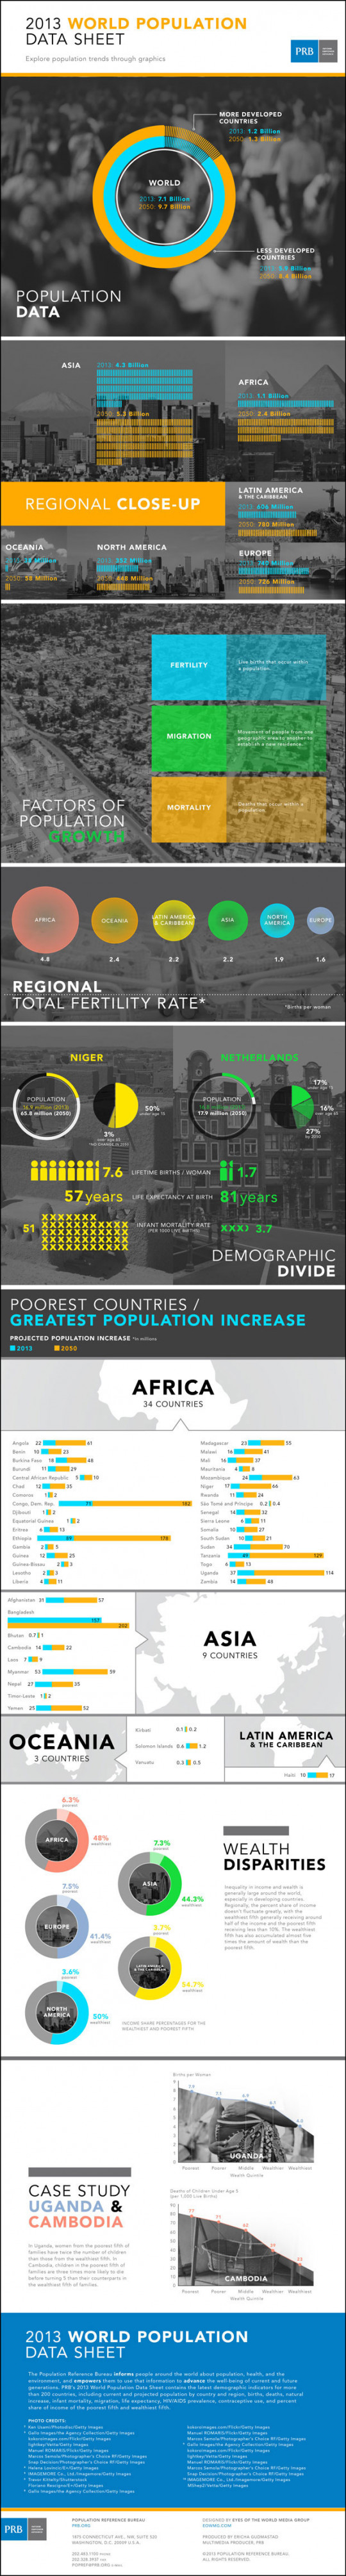 World Population Data Sheet 2013